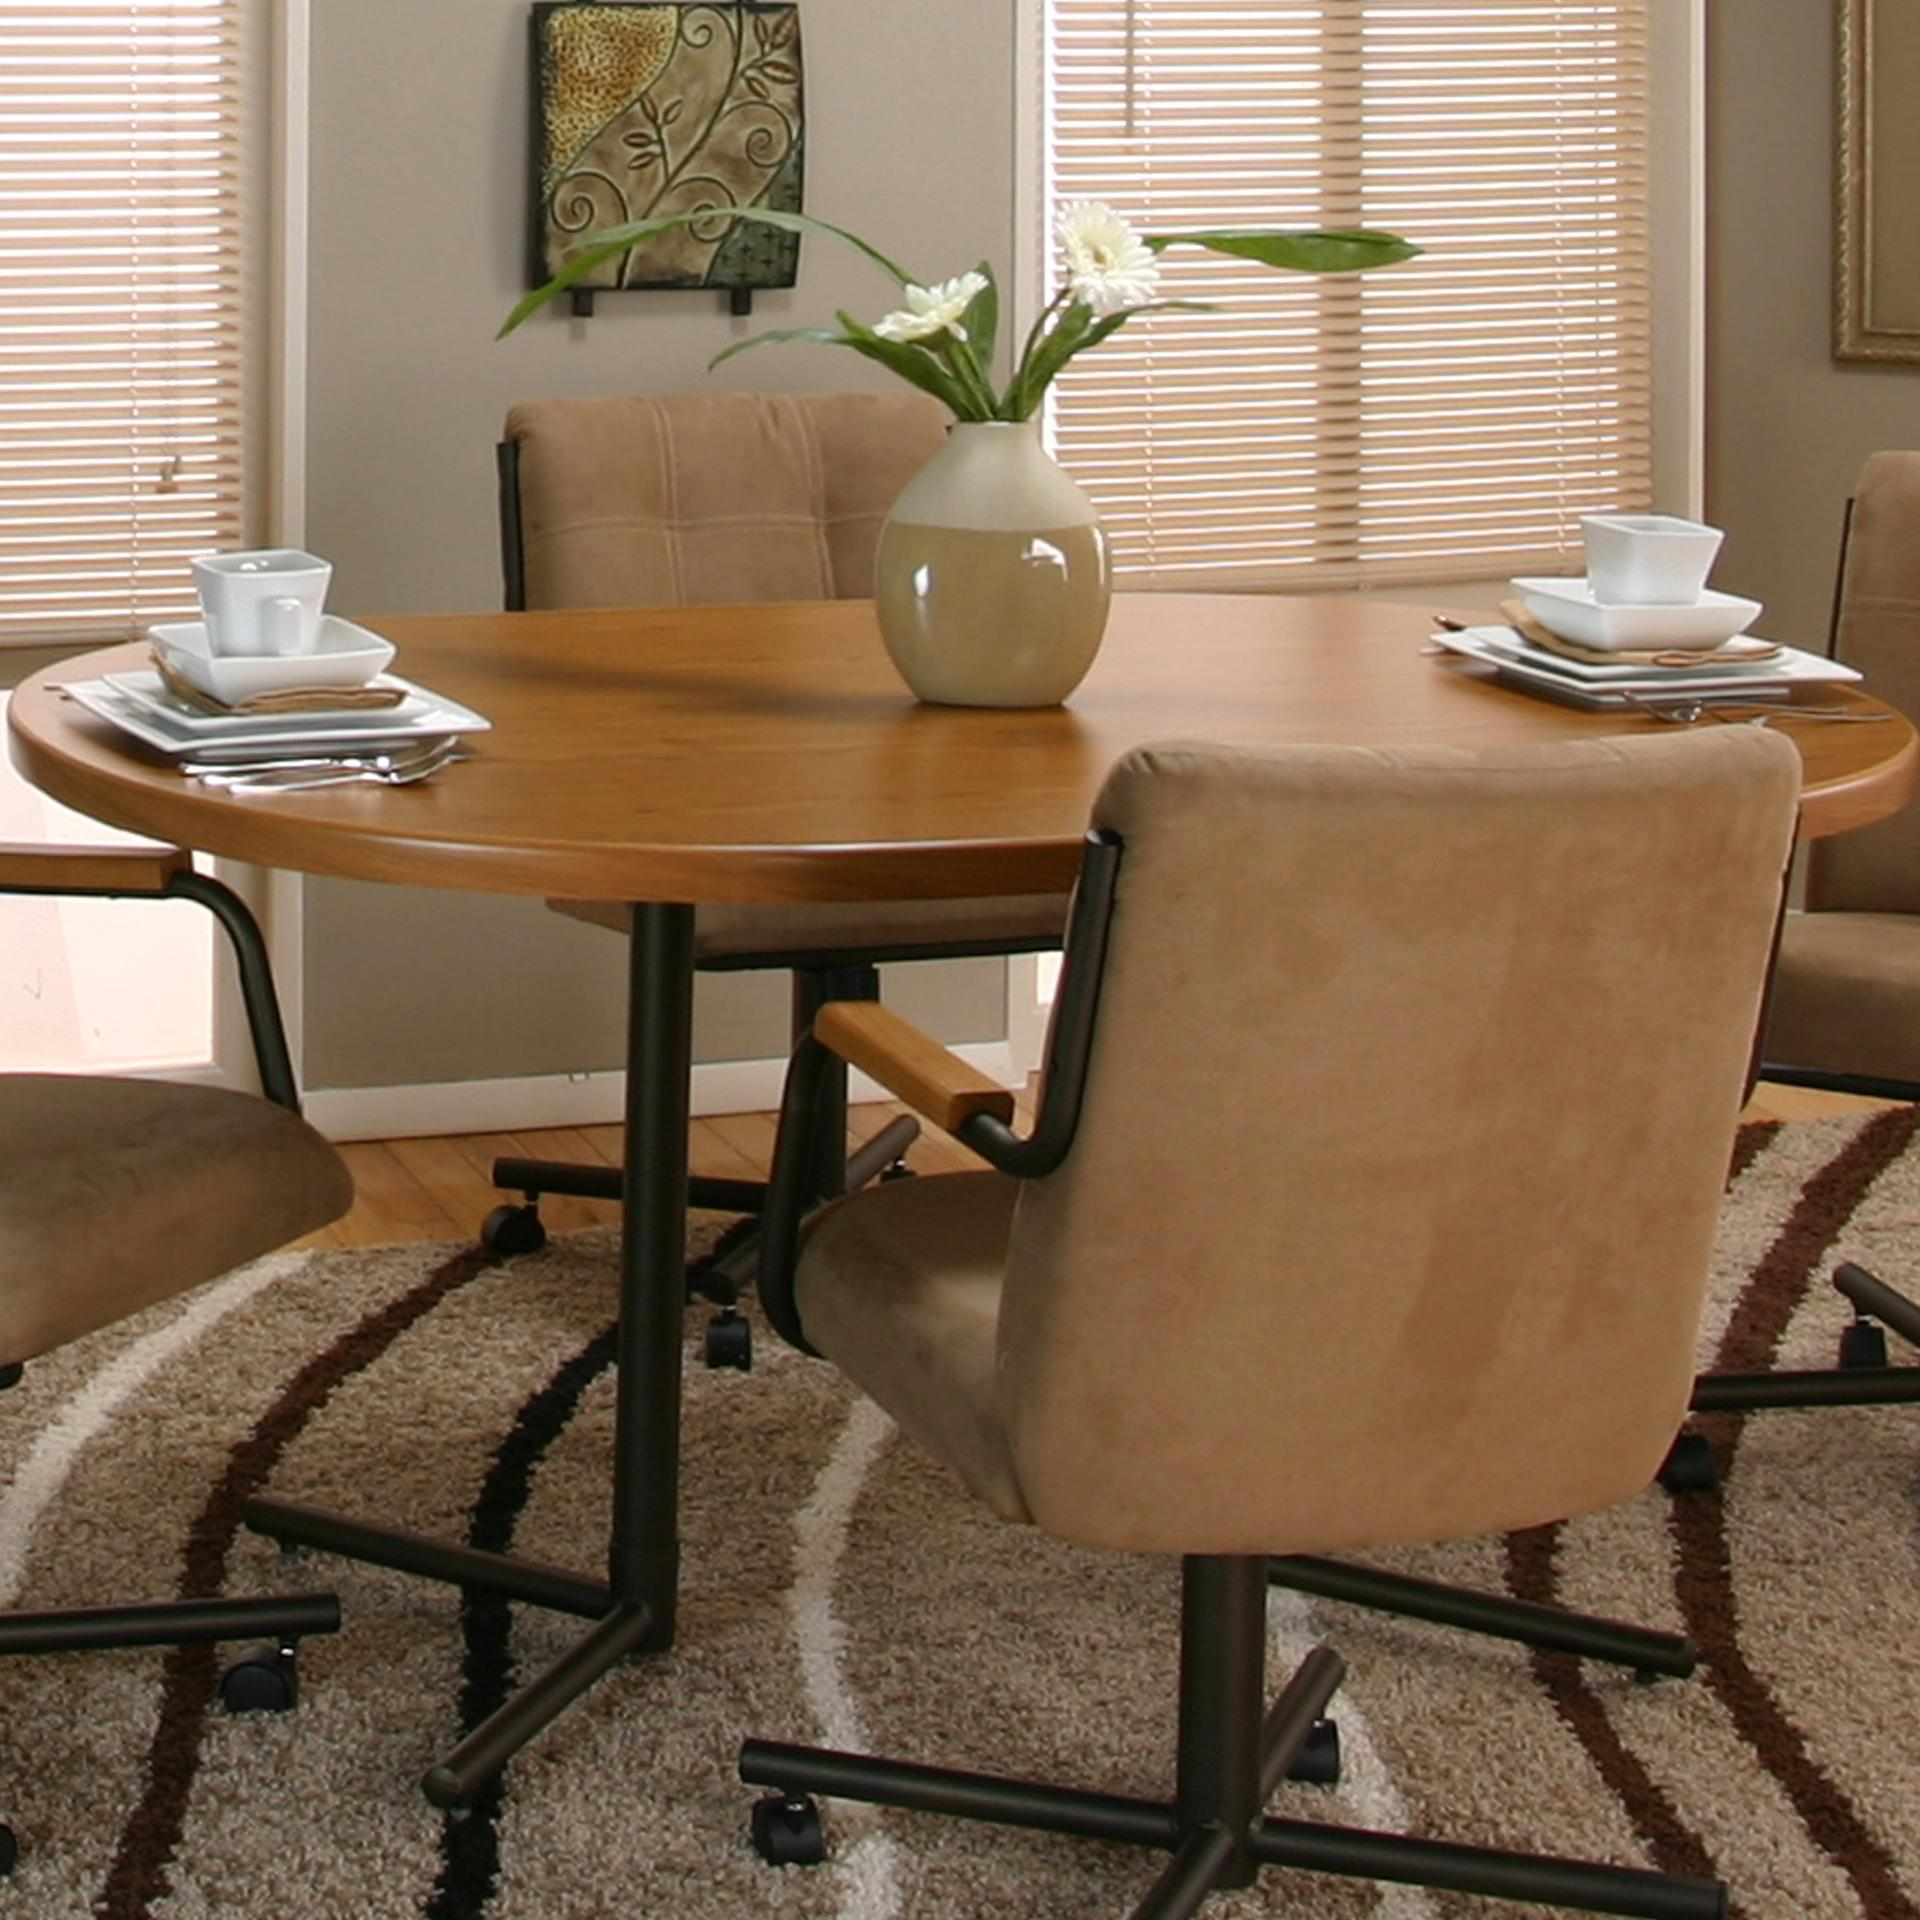 Dusk Dining Room Set Cramco: Dillon Casual Oval Dinner